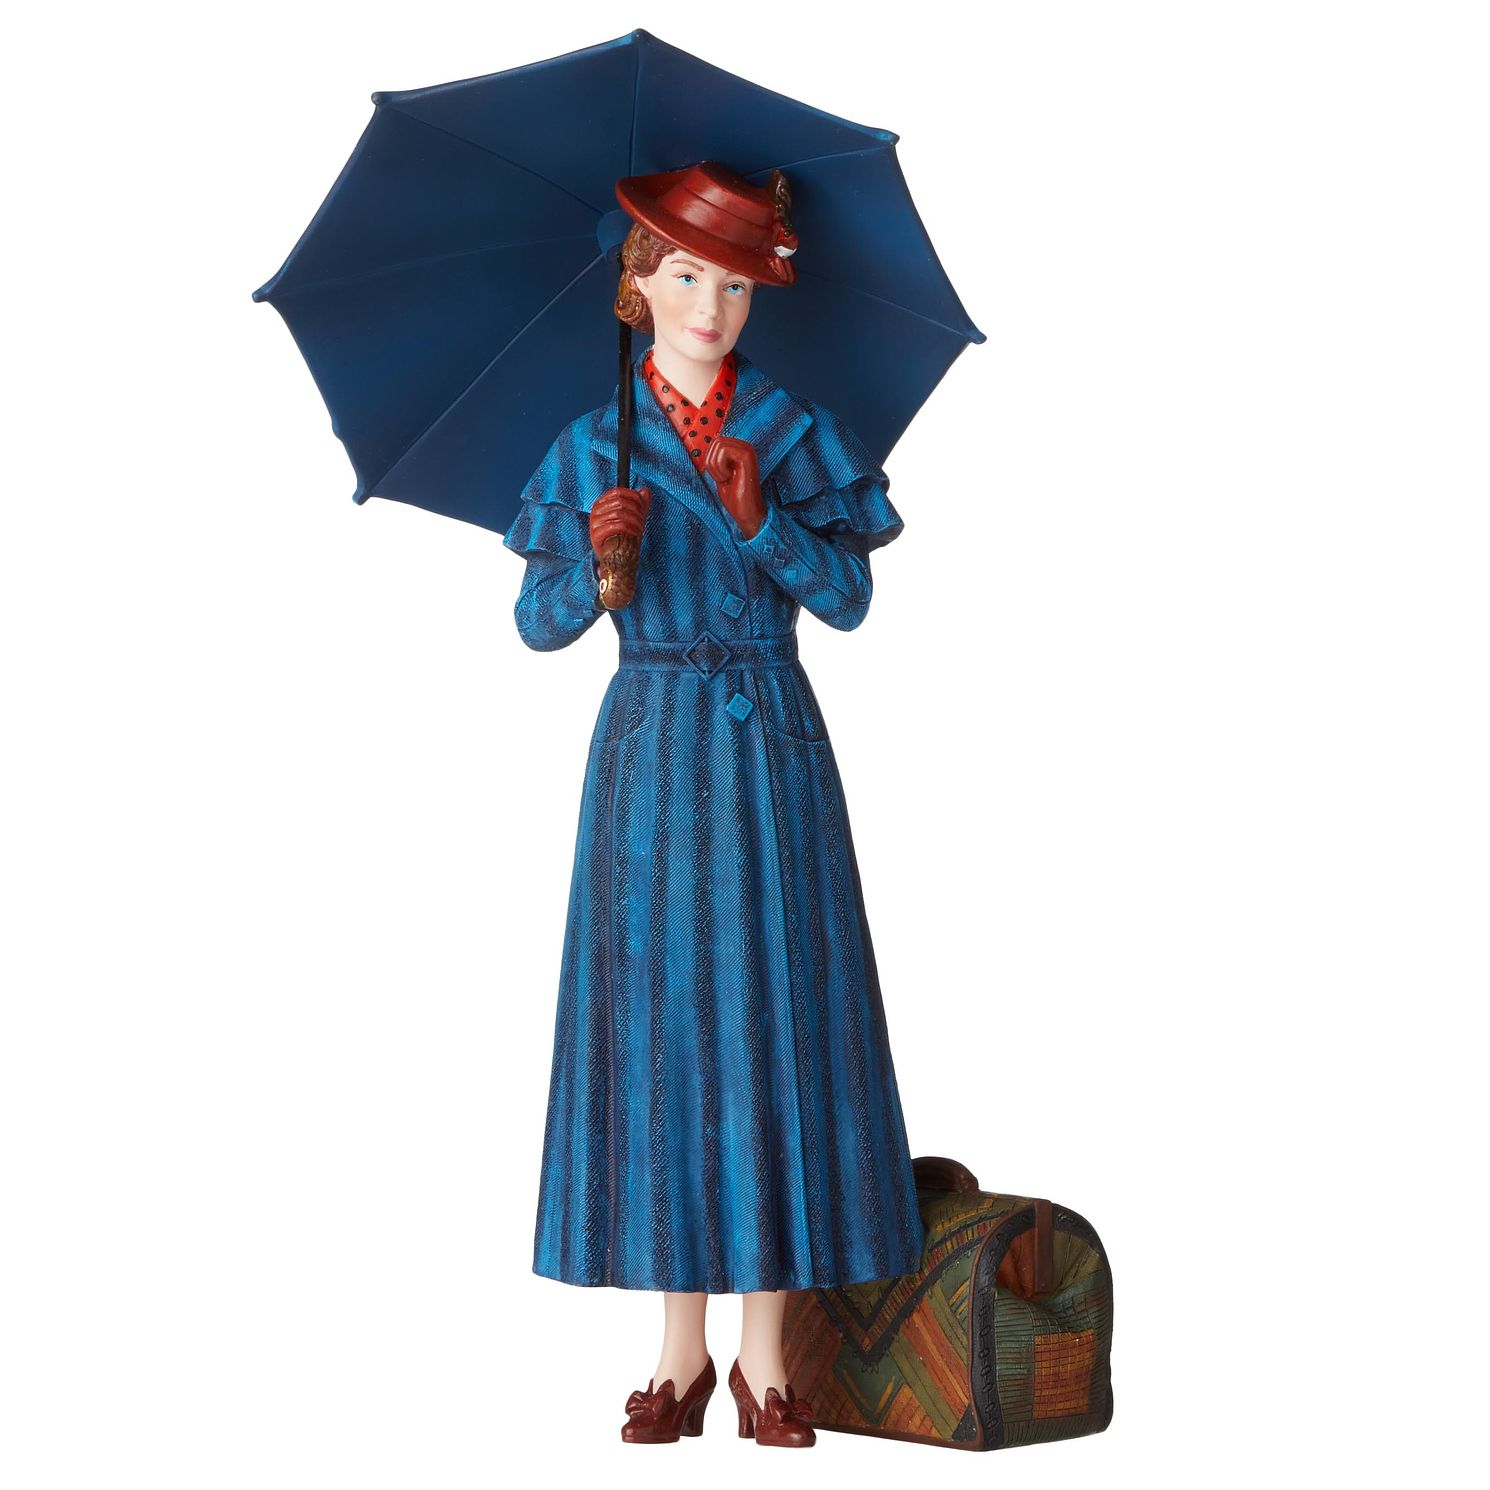 Disney Showcase Mary Poppins Returns Live Action Figurine - Product number 2950952